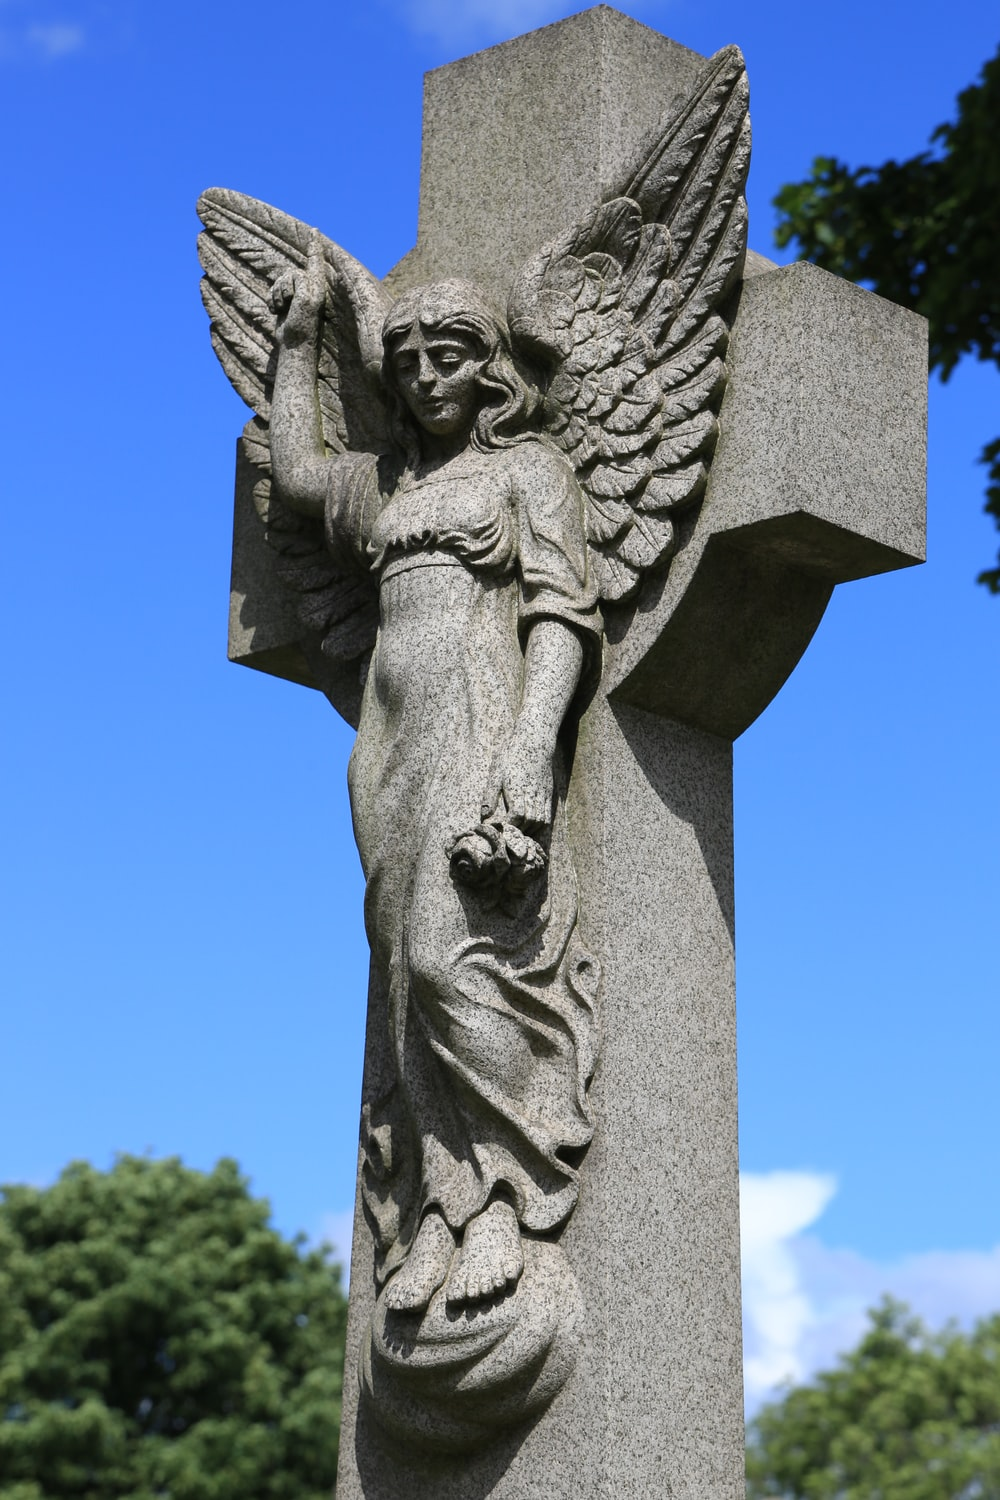 gray concrete angel statue during daytime